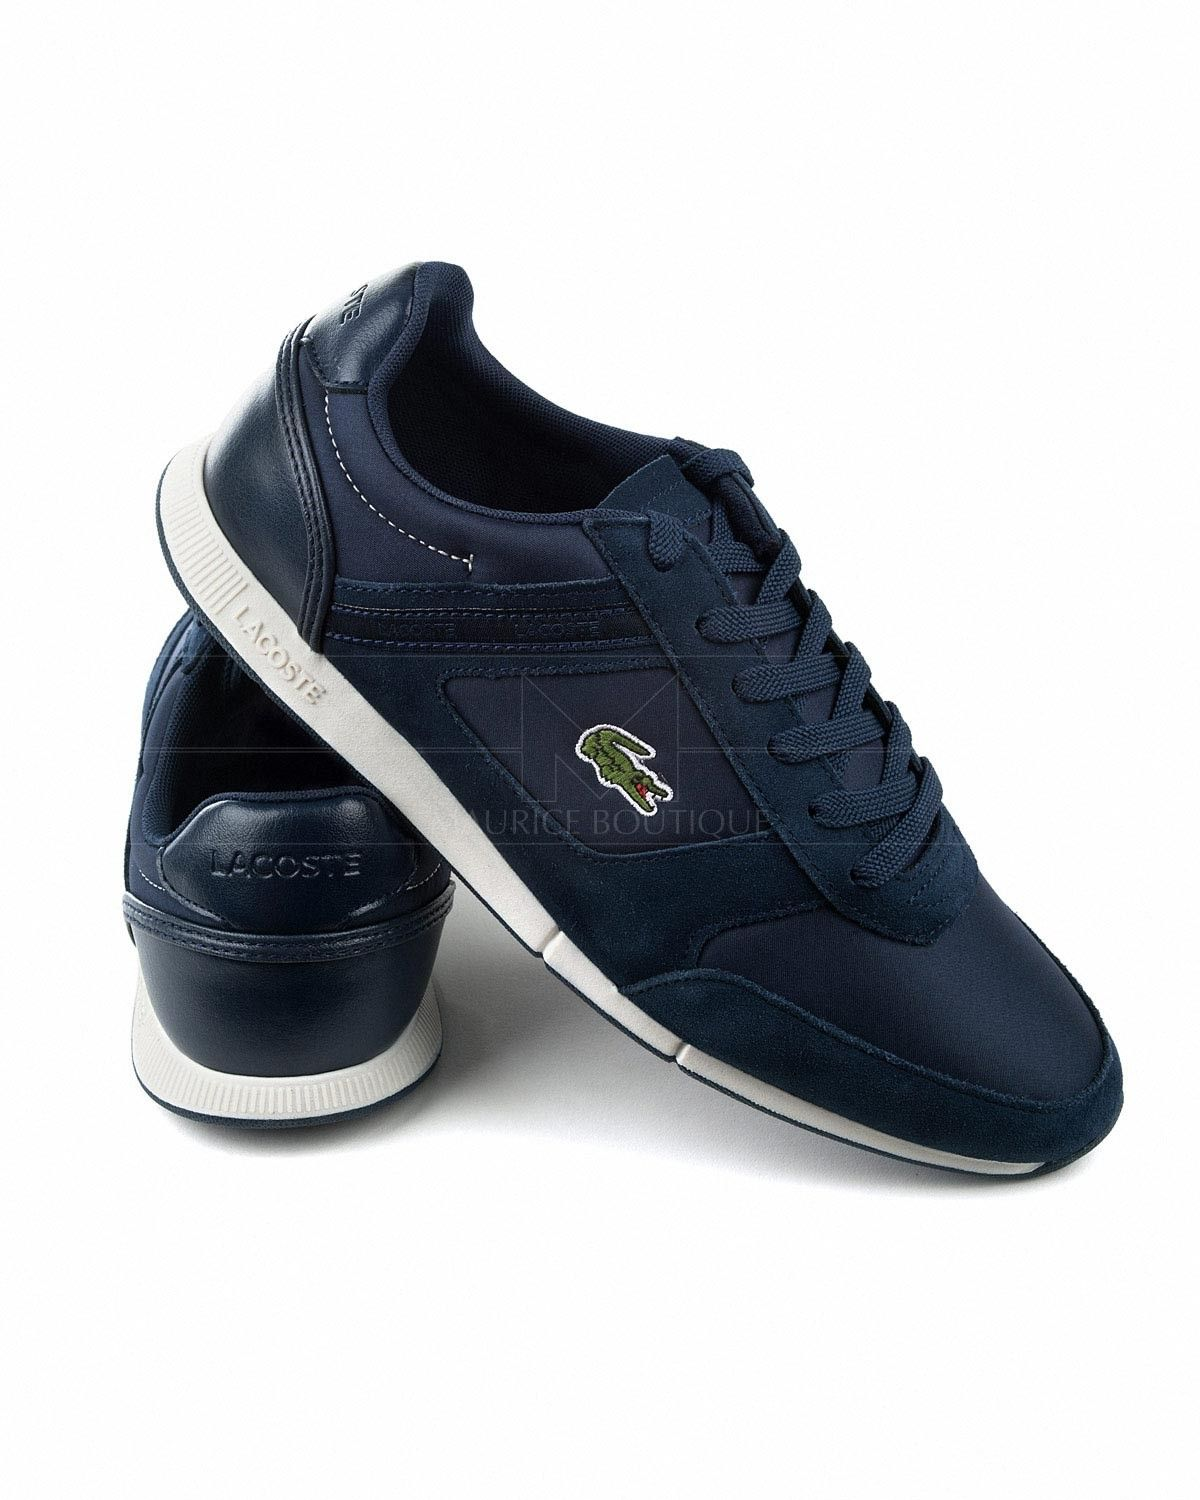 a193ec5bb06e Lacoste Menerva Sport Trainers - Navy Blue in 2019